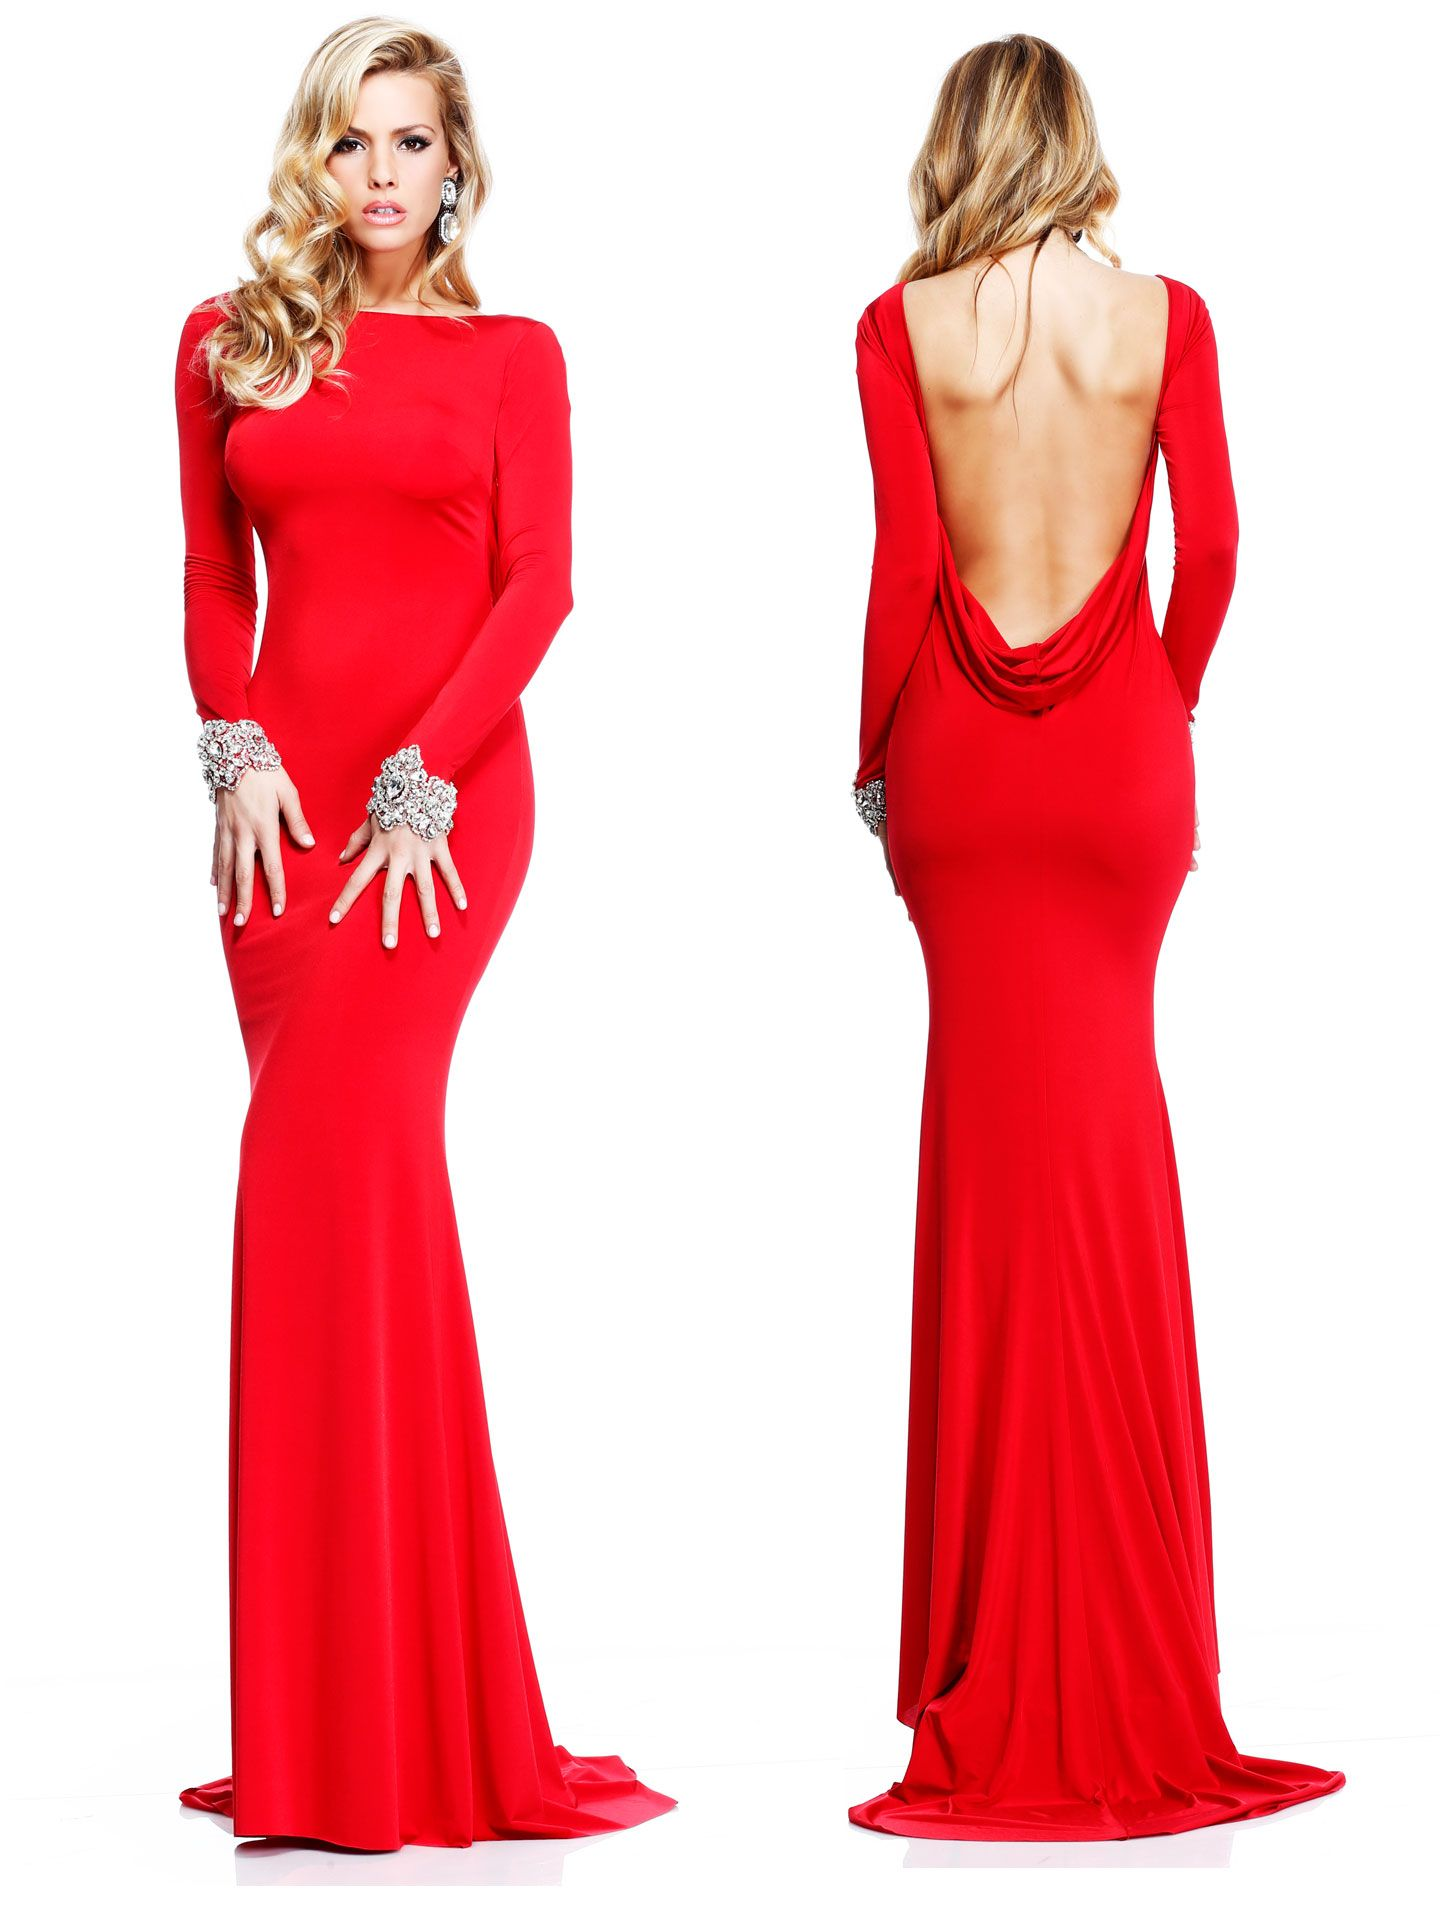 red prom dresses inspired by the dancing lady emoji floor